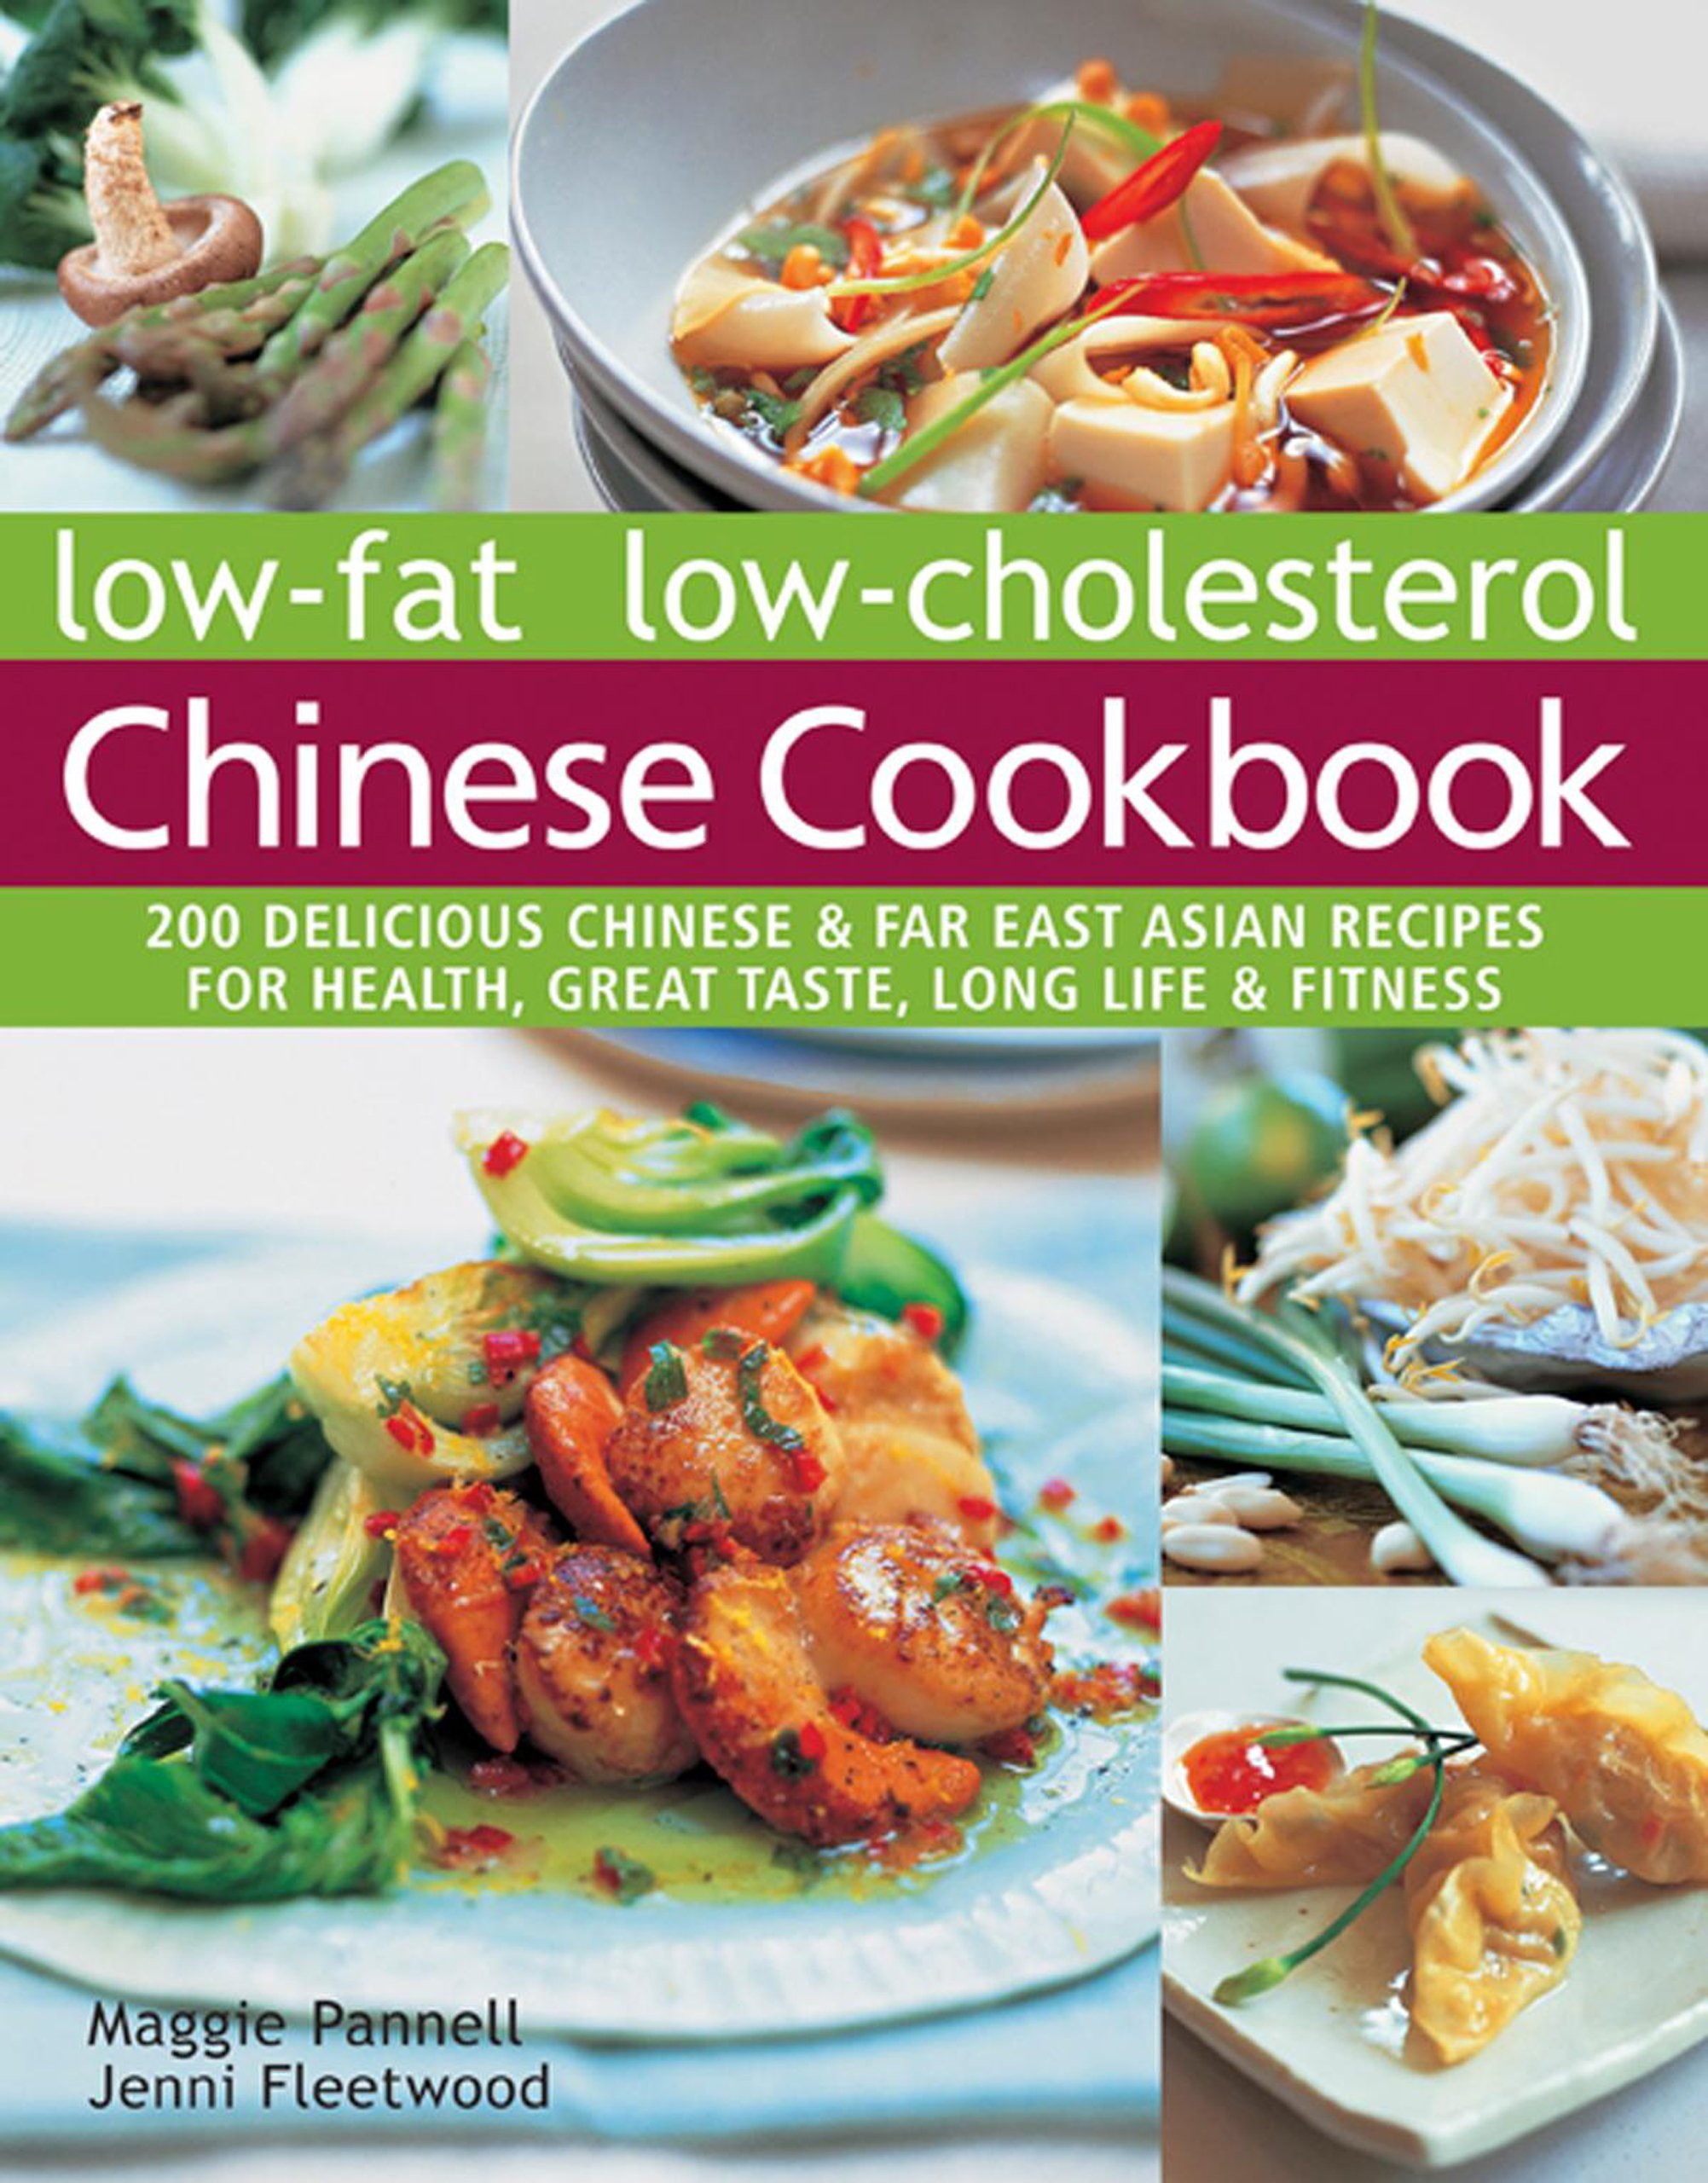 Low-Fat Low-Cholesterol Chinese Cookbook: 200 Delicious Chinese & Far East Asian  Recipes For Health, Great Taste, Long Life & Fitness Paperback – July 7, ...